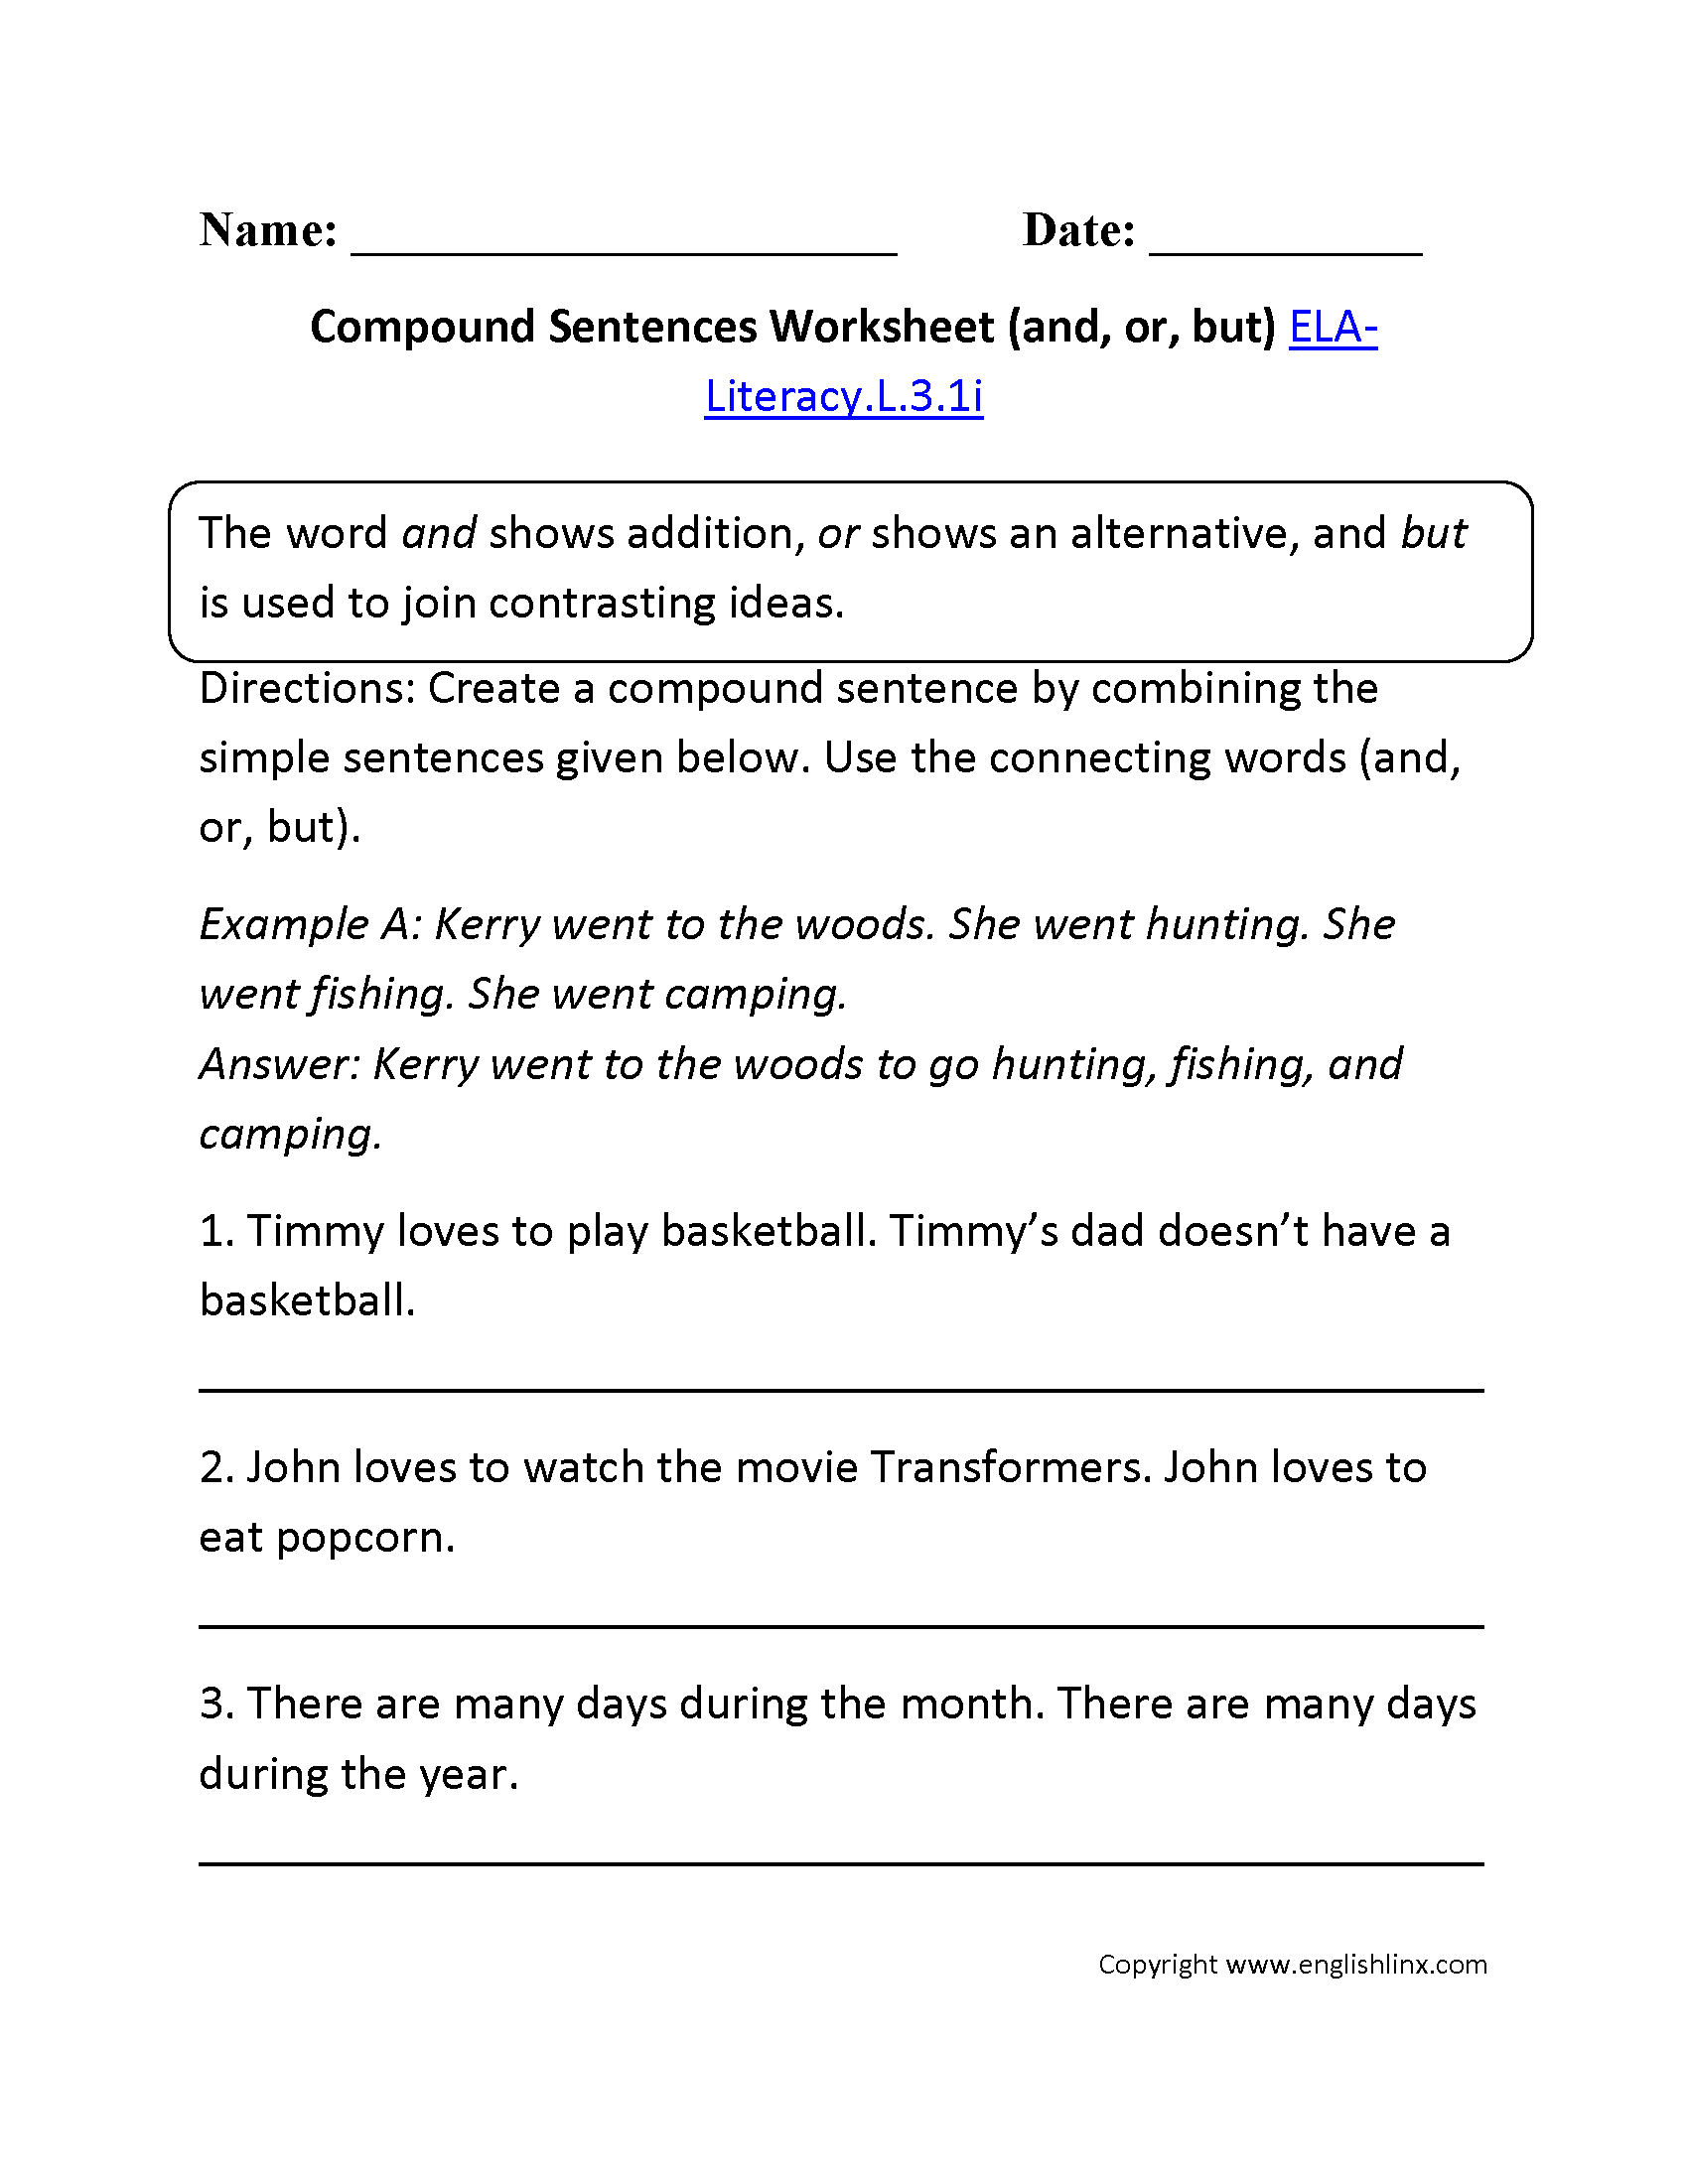 Worksheets Ela Worksheets For 5th Grade compound sentence worksheet 1 l 3 pinterest english worksheets that are aligned to the grade common core standards for language